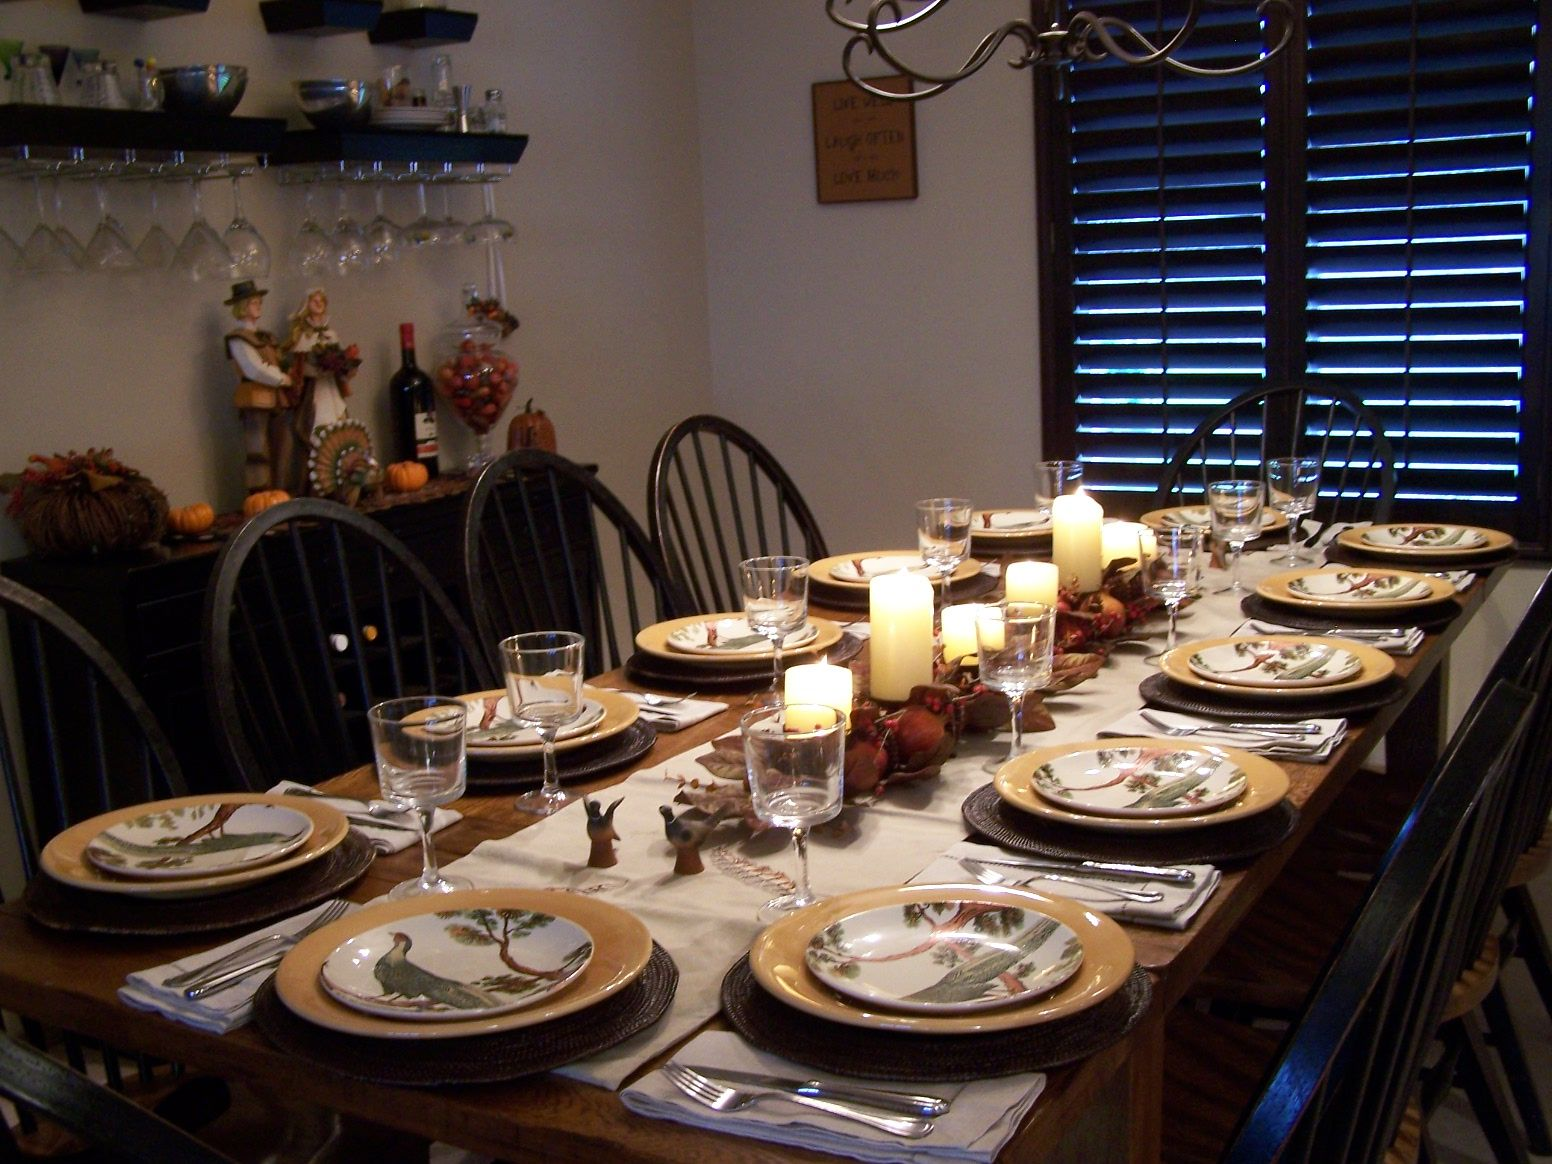 Lovely Decoration:Inspiring Home Decorations With Thanksgiving Dinner Table  Setting Together With Plates And Glass Also Candles And This Creative  Thanksgiving ...